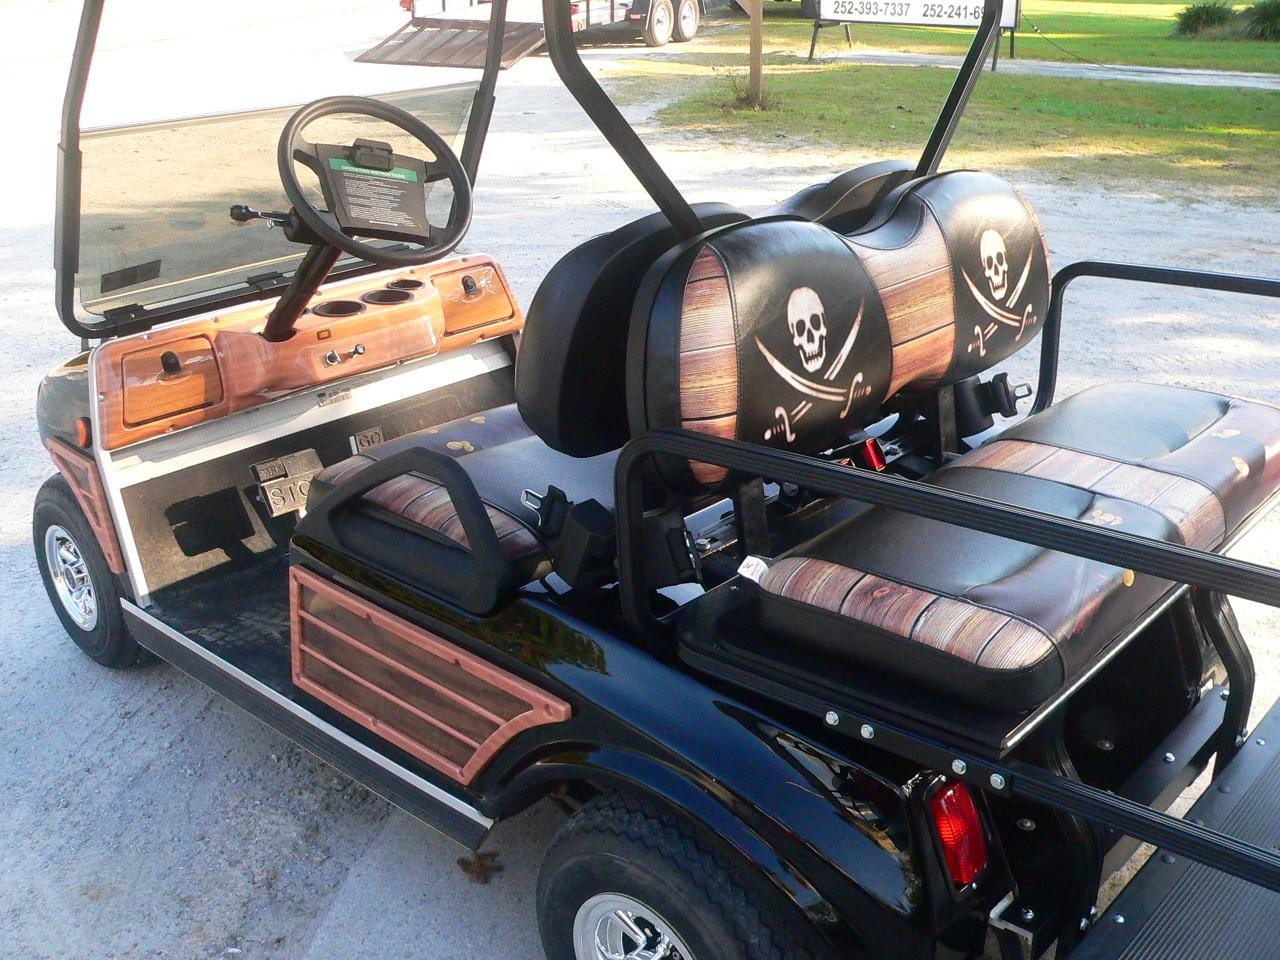 Coastline GOLF CARTS - Golf Cart Kits on beach themed entertainment, beach themed shoes, beach themed doors, beach themed cabinets, beach themed signs, texas beach golf carts, beach themed cars, beach themed fencing, beach cart wheels, beach themed apartments, palm beach golf carts, beach themed hardware, beach themed home, beach themed accessories, beach themed golf course, beach themed storage, beach themed office supplies,